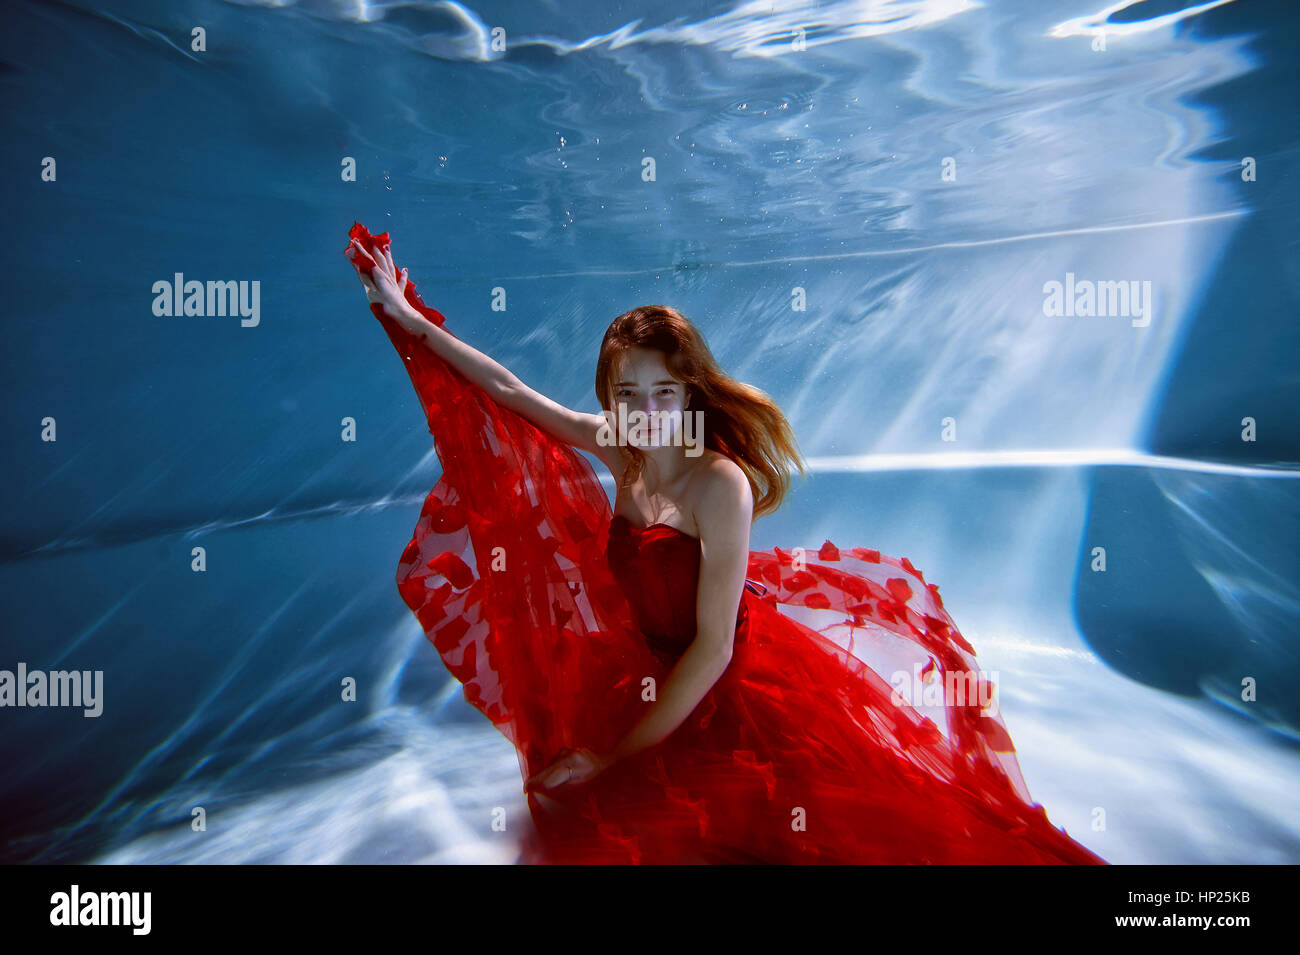 girl underwater in dress stockfotos girl underwater in dress bilder alamy. Black Bedroom Furniture Sets. Home Design Ideas